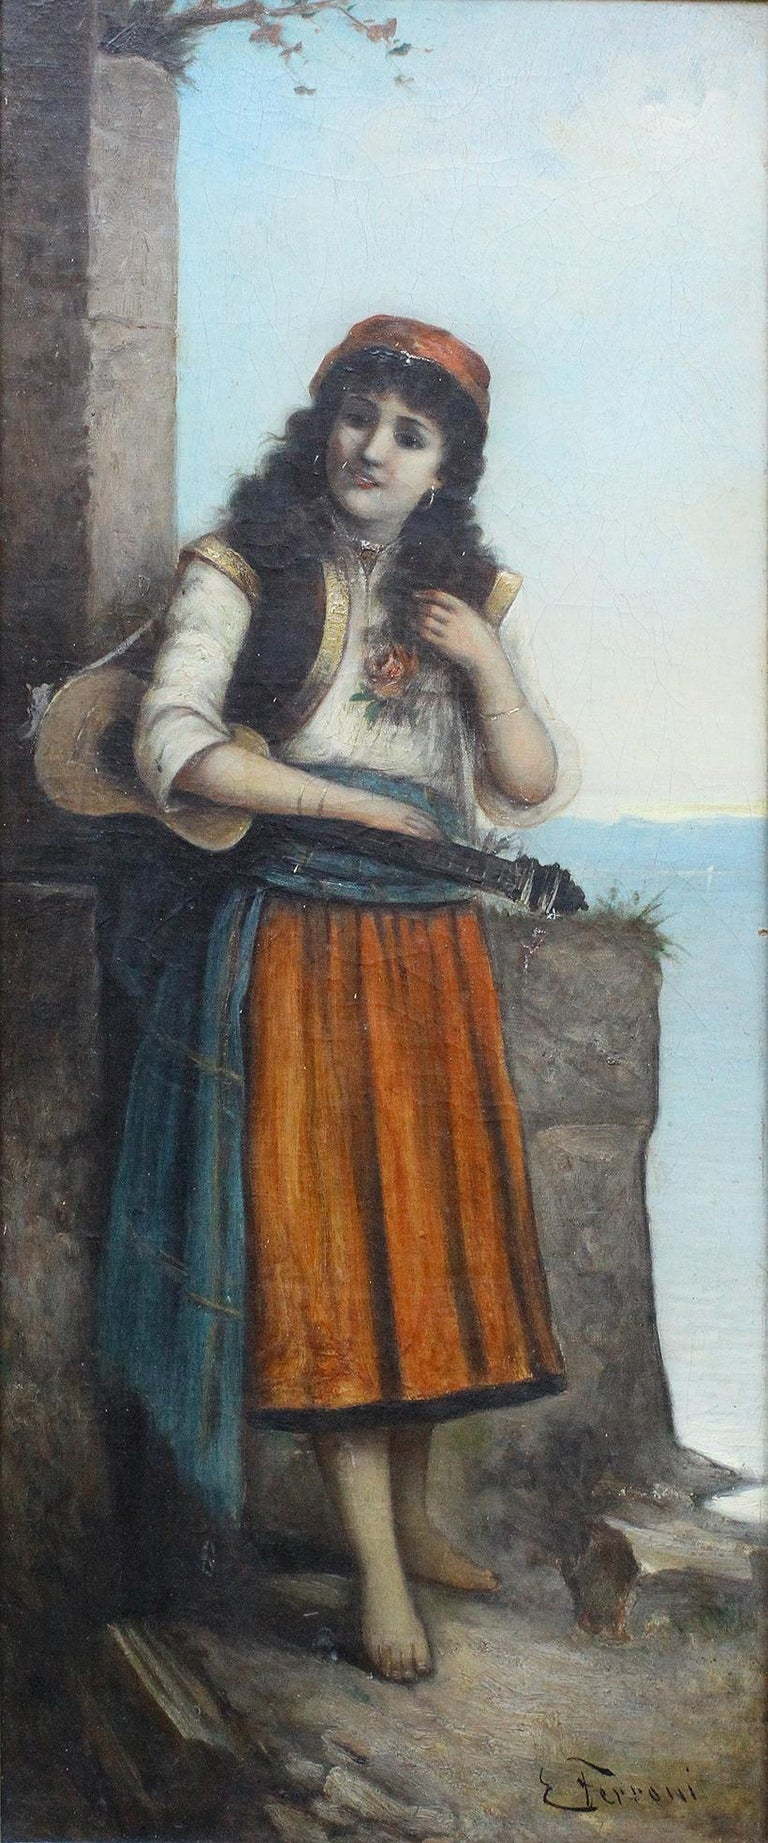 Egisto Ferroni (1835-1912)